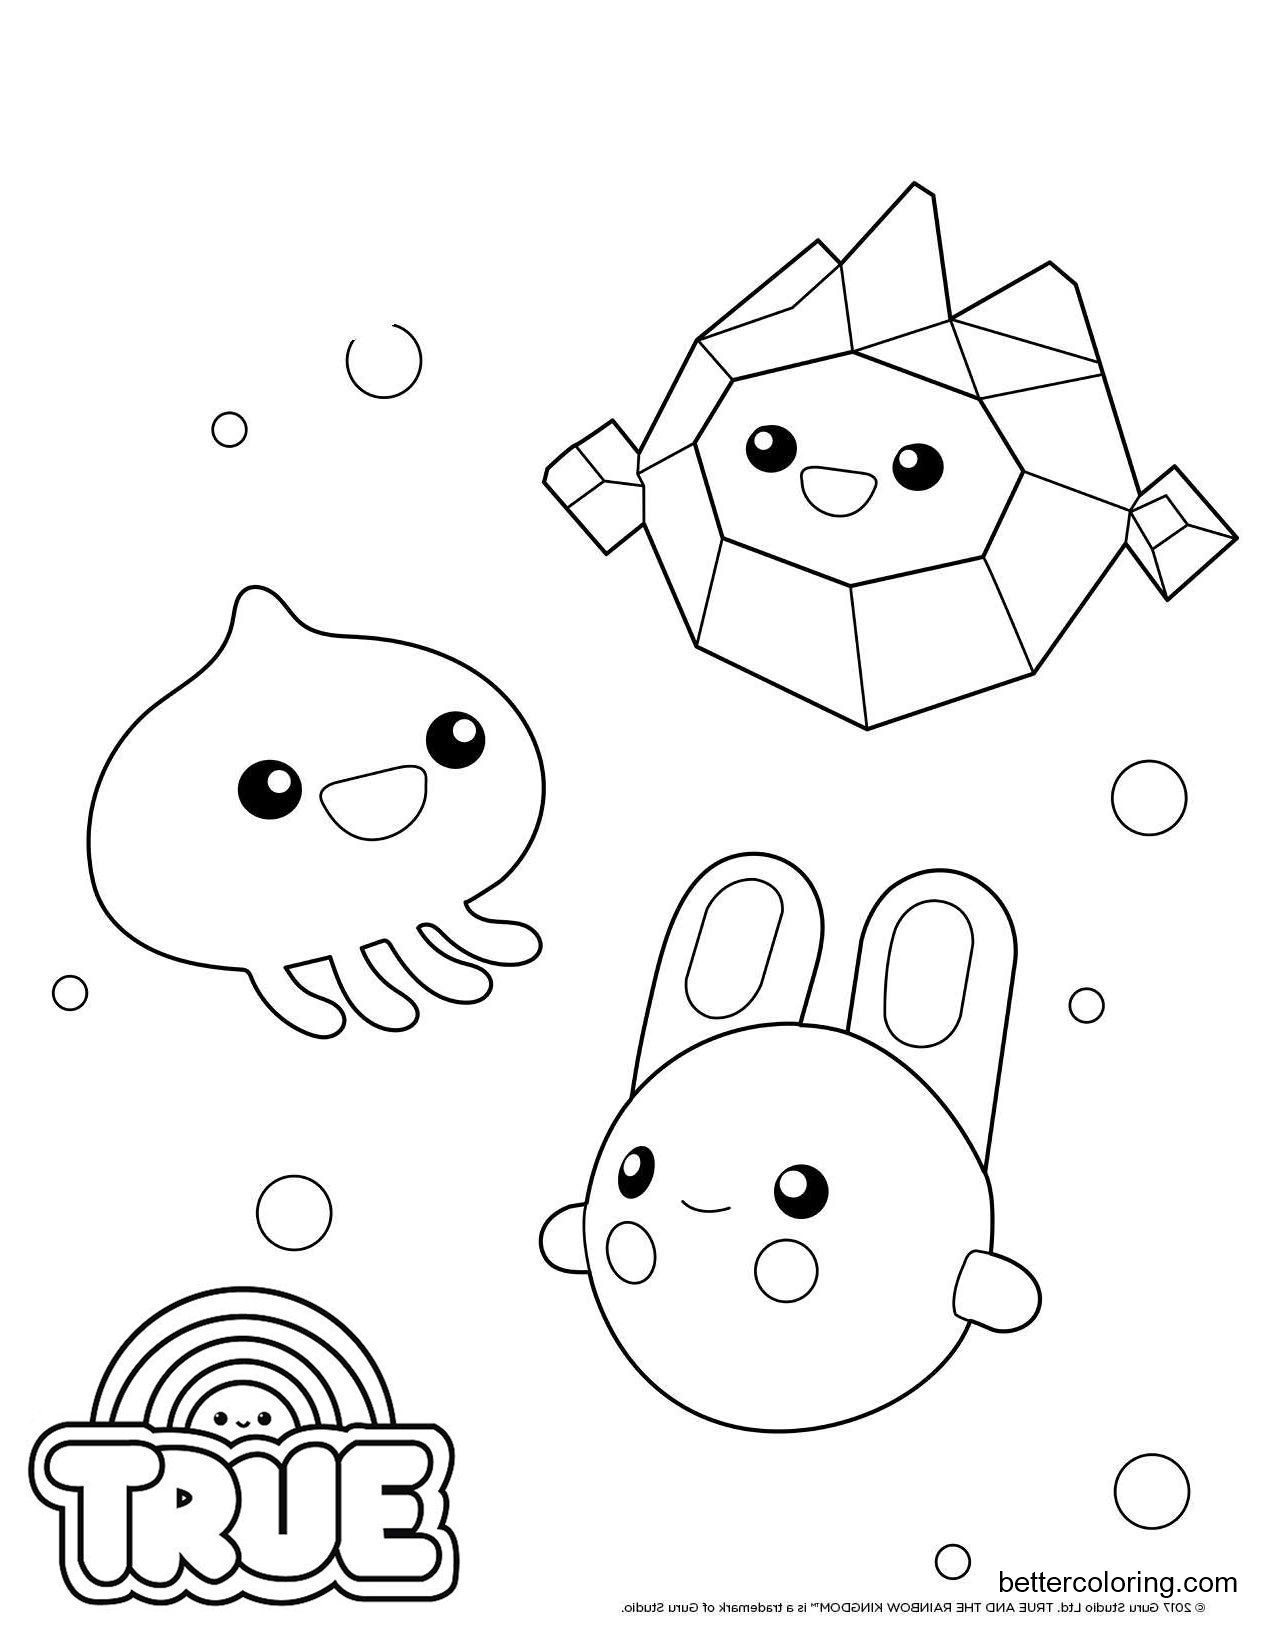 Wishes from True and the Rainbow Kingdom Coloring Pages ...